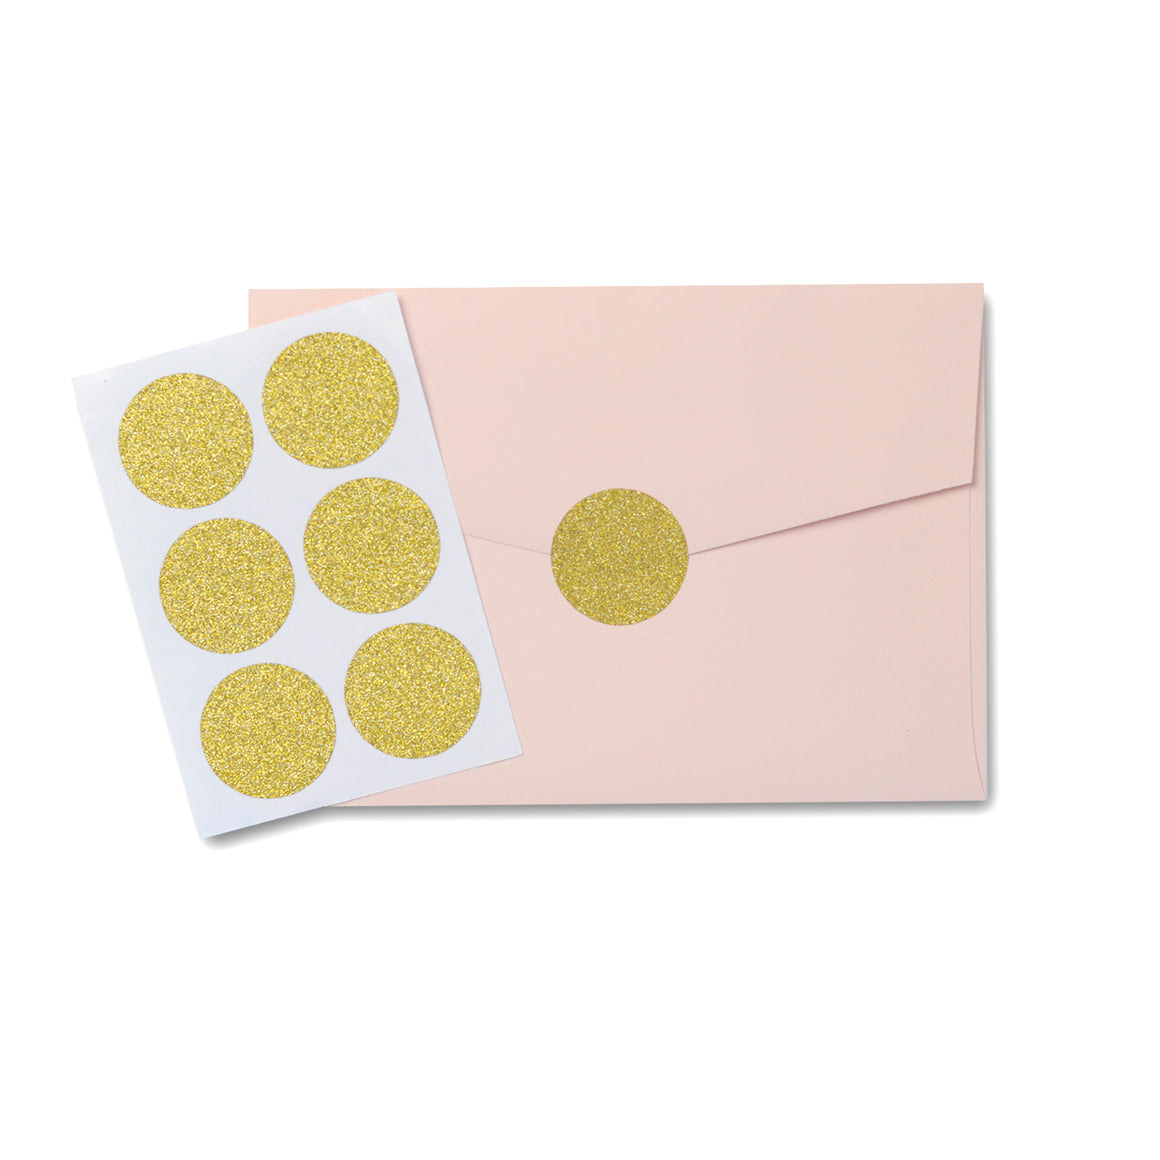 Gold Glitter Circle Sticker Seal